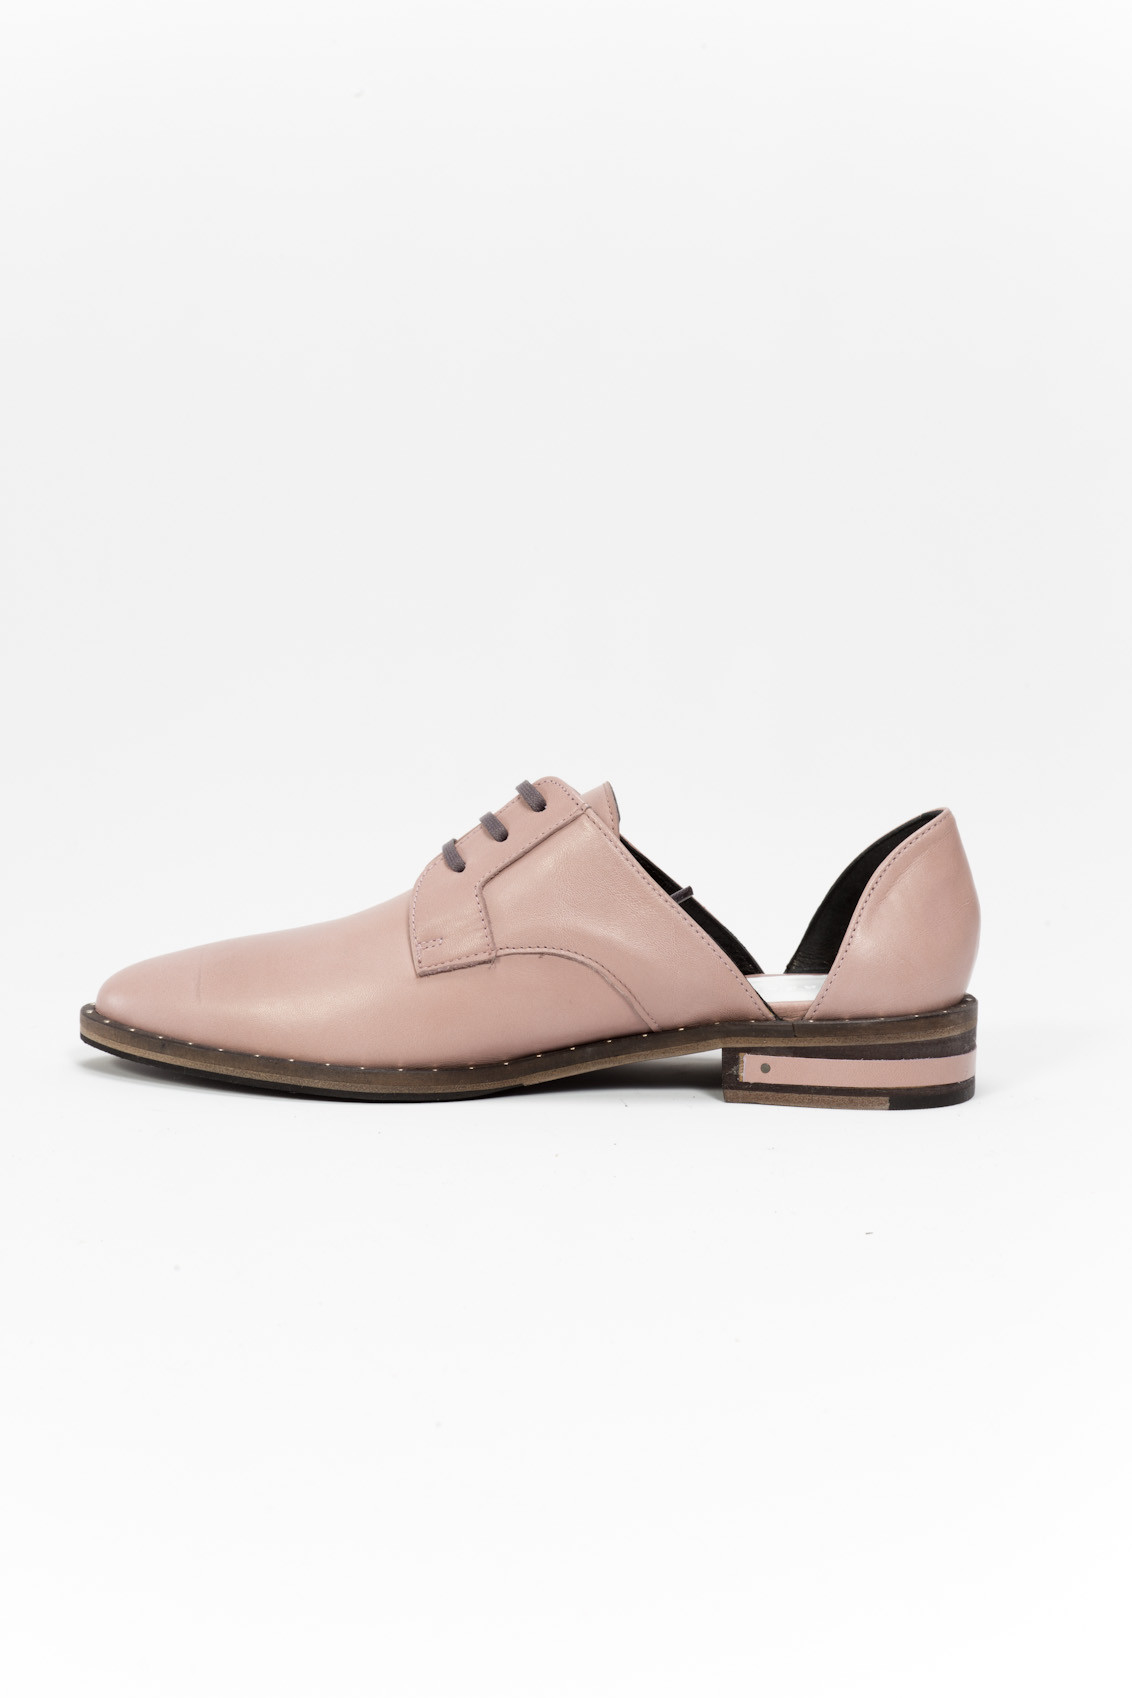 Fru0113da Salvador Wit Leather Oxford Shoes In Pink | Lyst